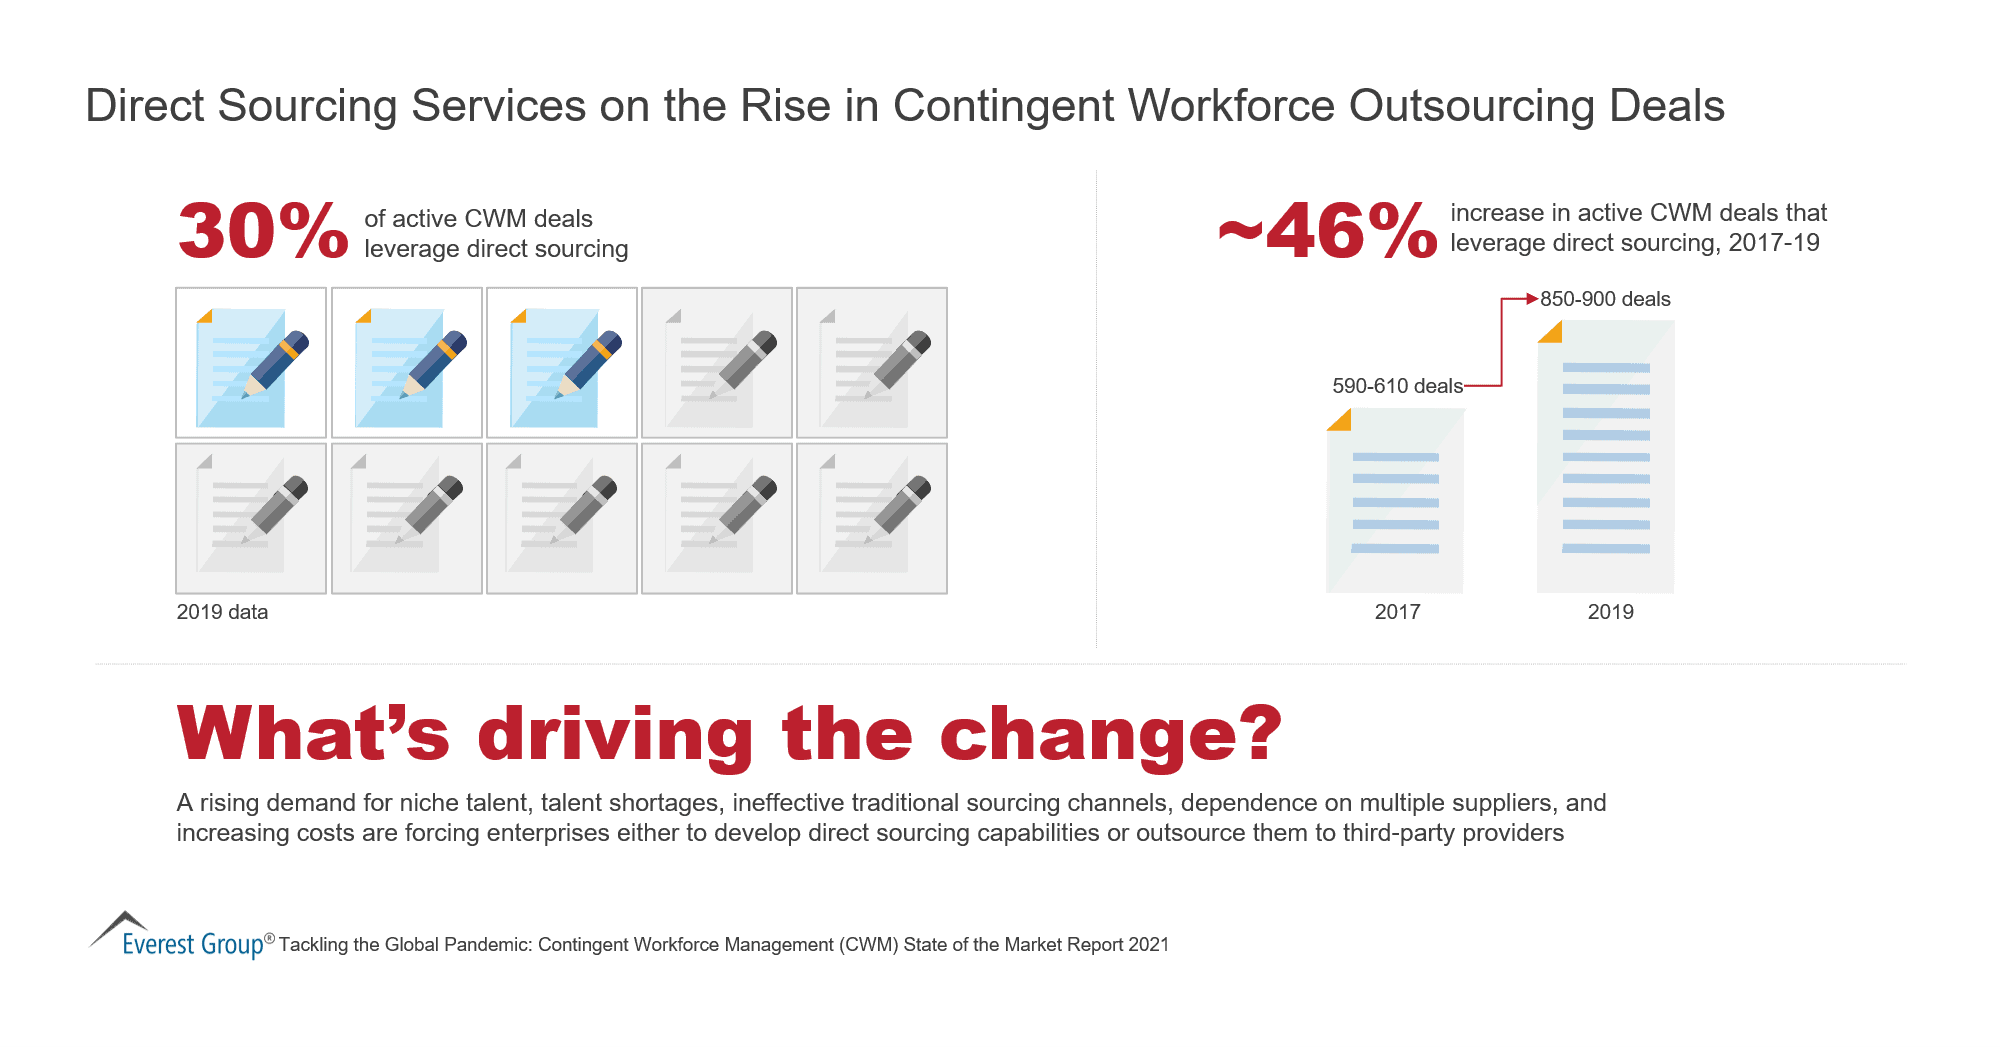 Direct Sourcing Services on the Rise in Contingent Workforce Outsourcing Deals